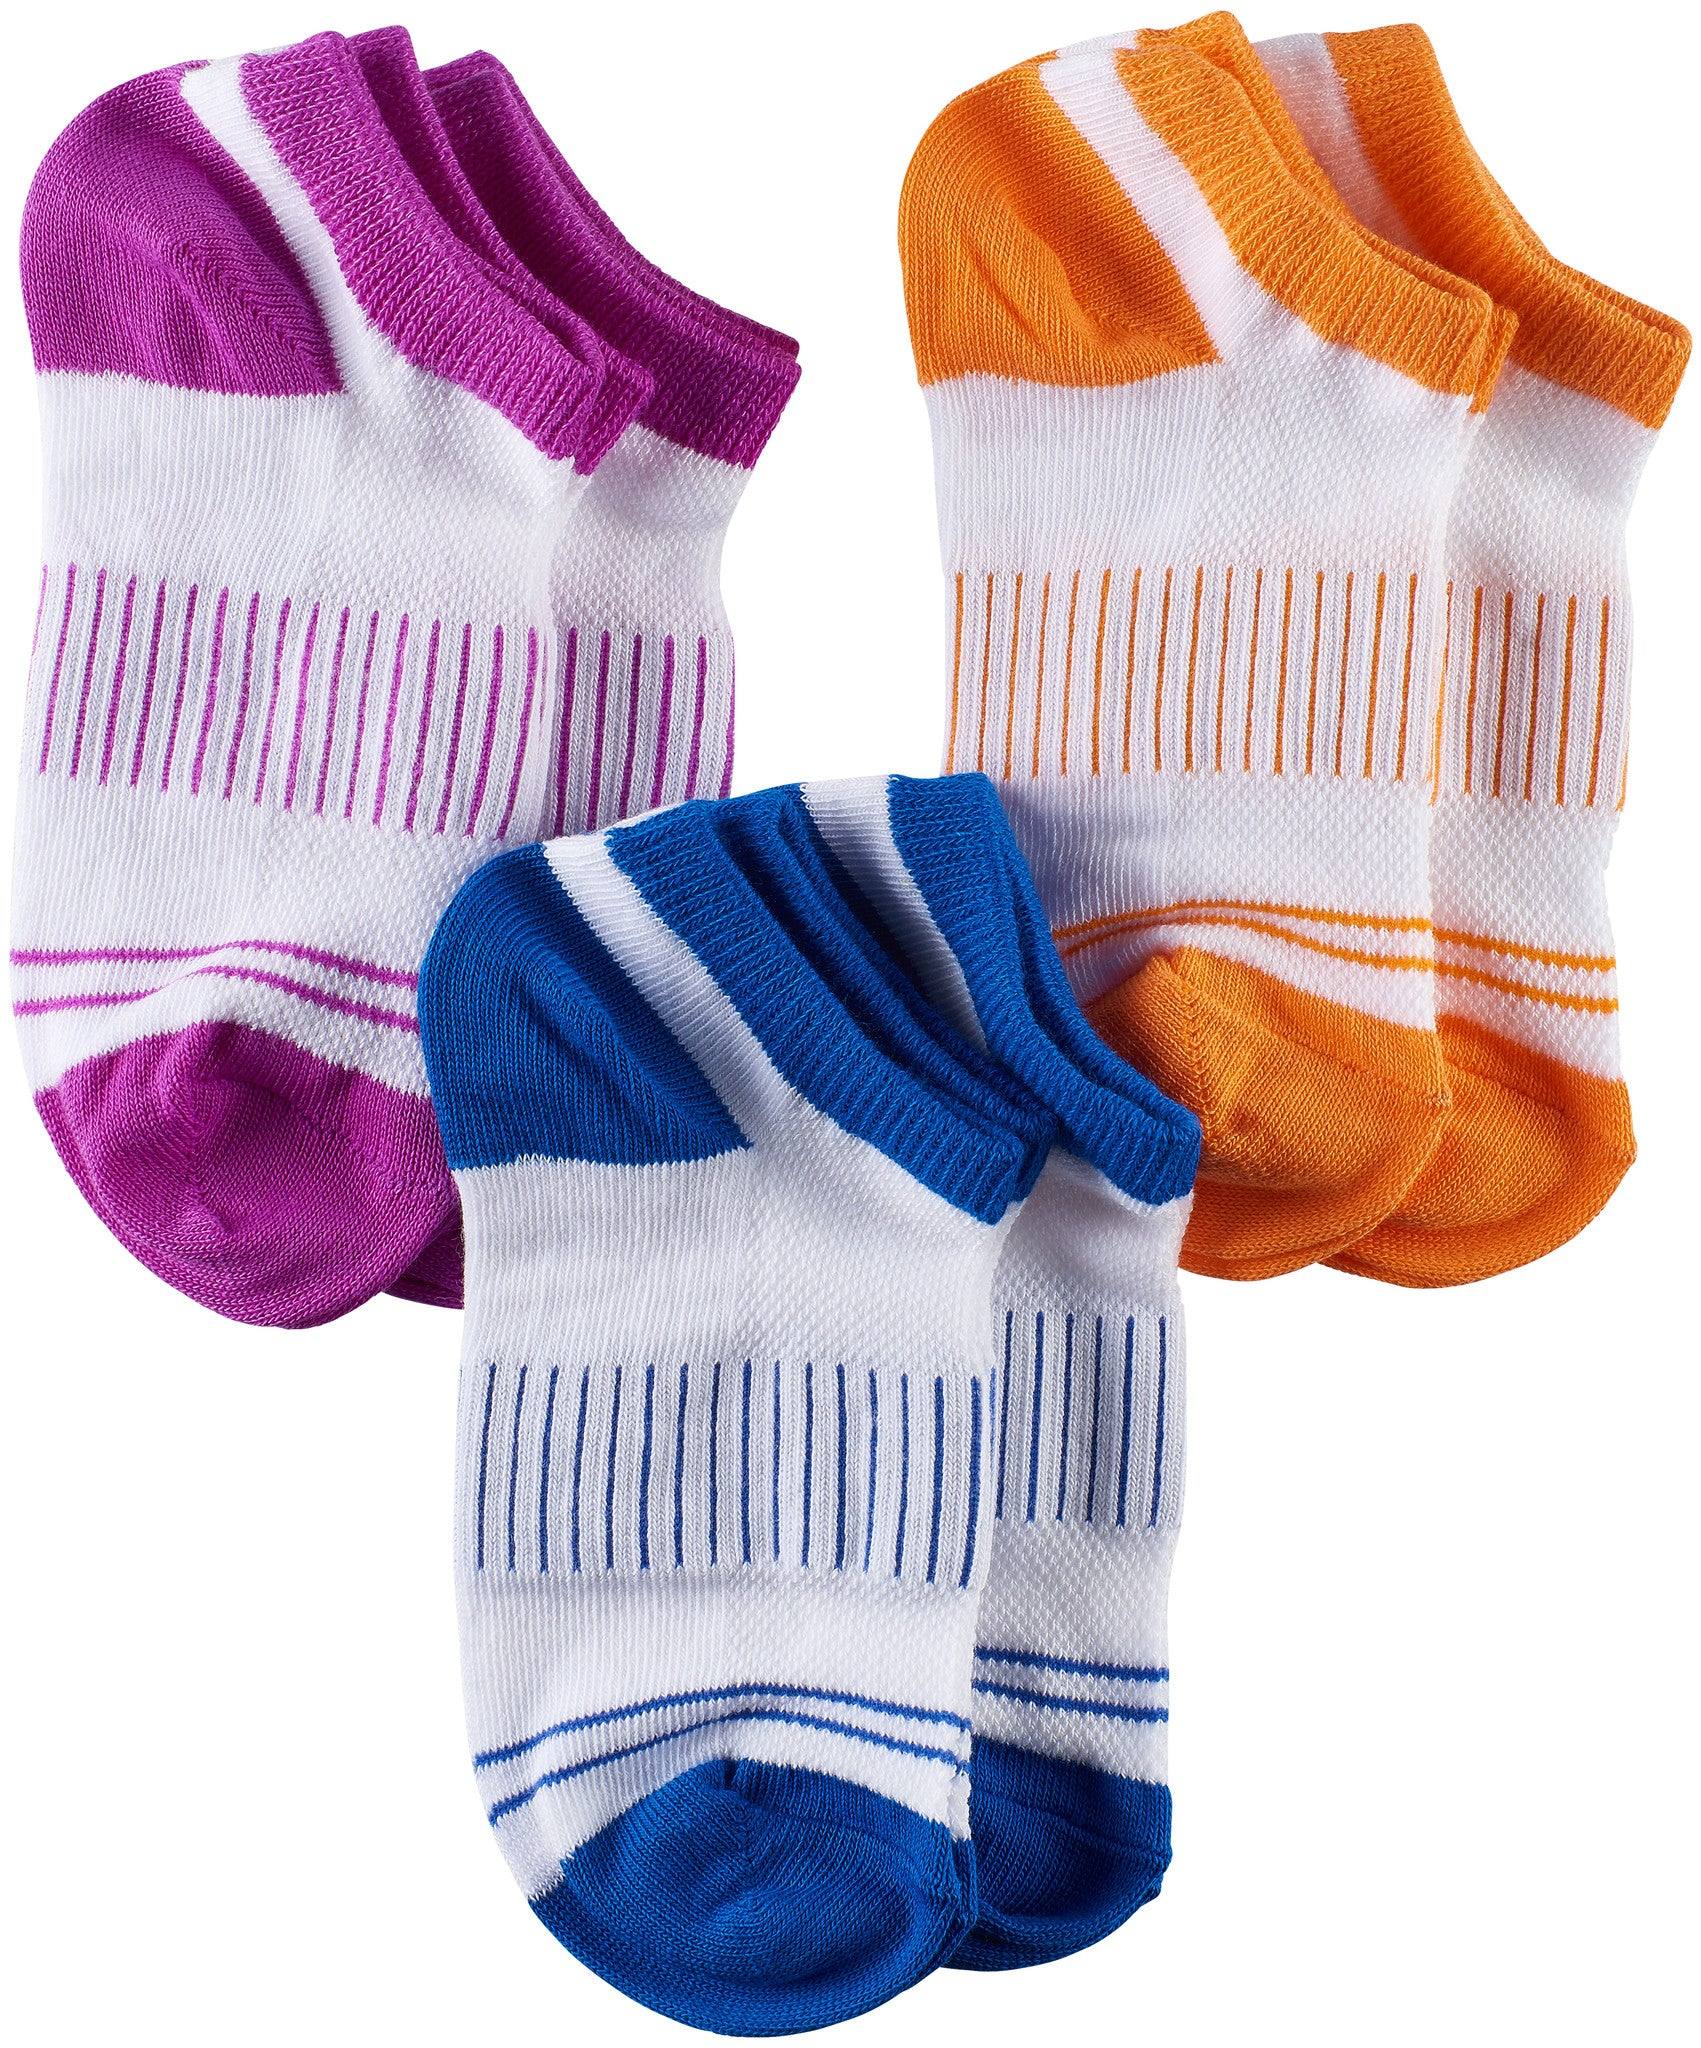 Girls Sport Low Cut Socks, Purple/Navy/Orange (Pack of 6)